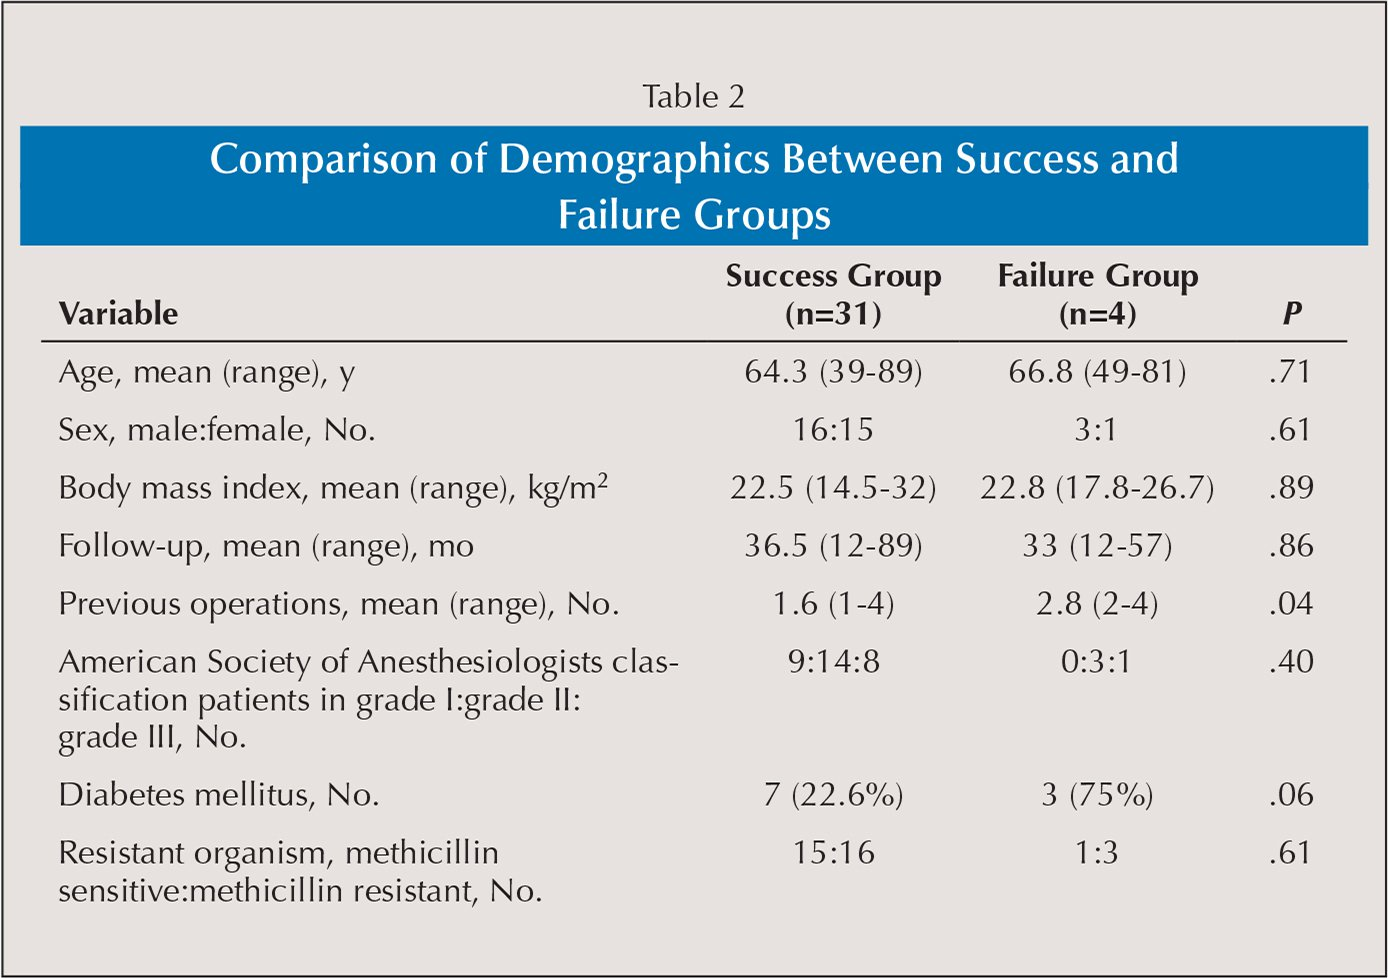 Comparison of Demographics Between Success and Failure Groups